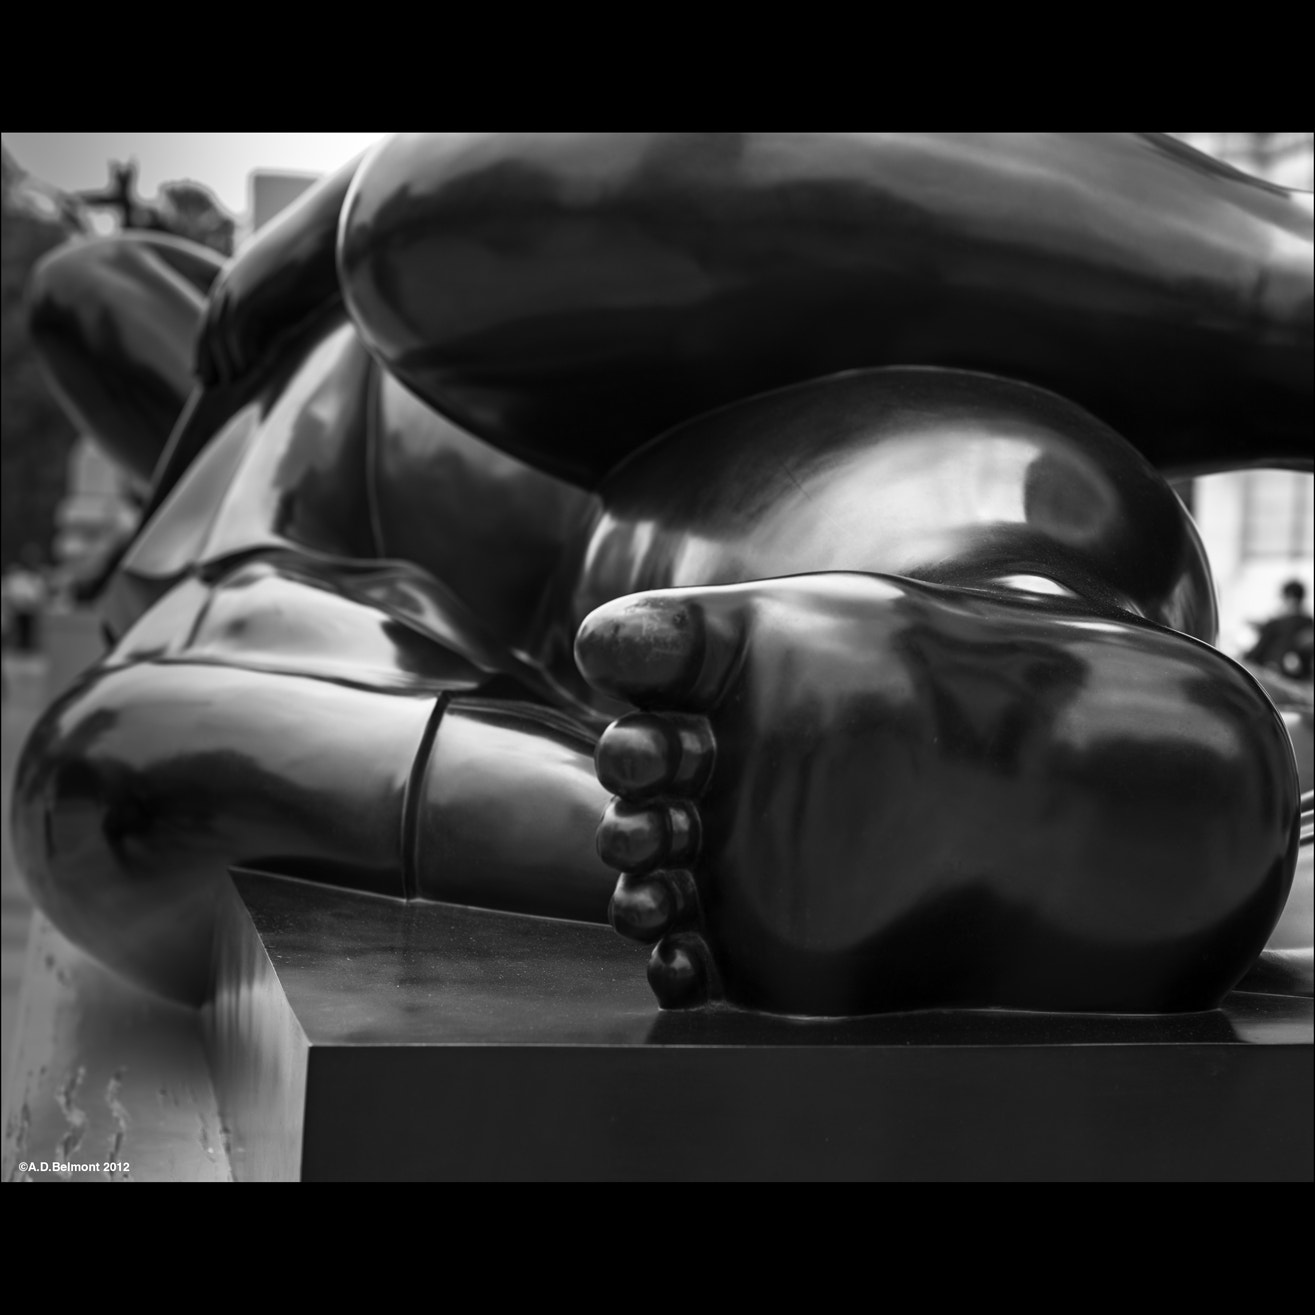 Photograph Botero@BellasArtes by Arturo Díaz Belmont on 500px